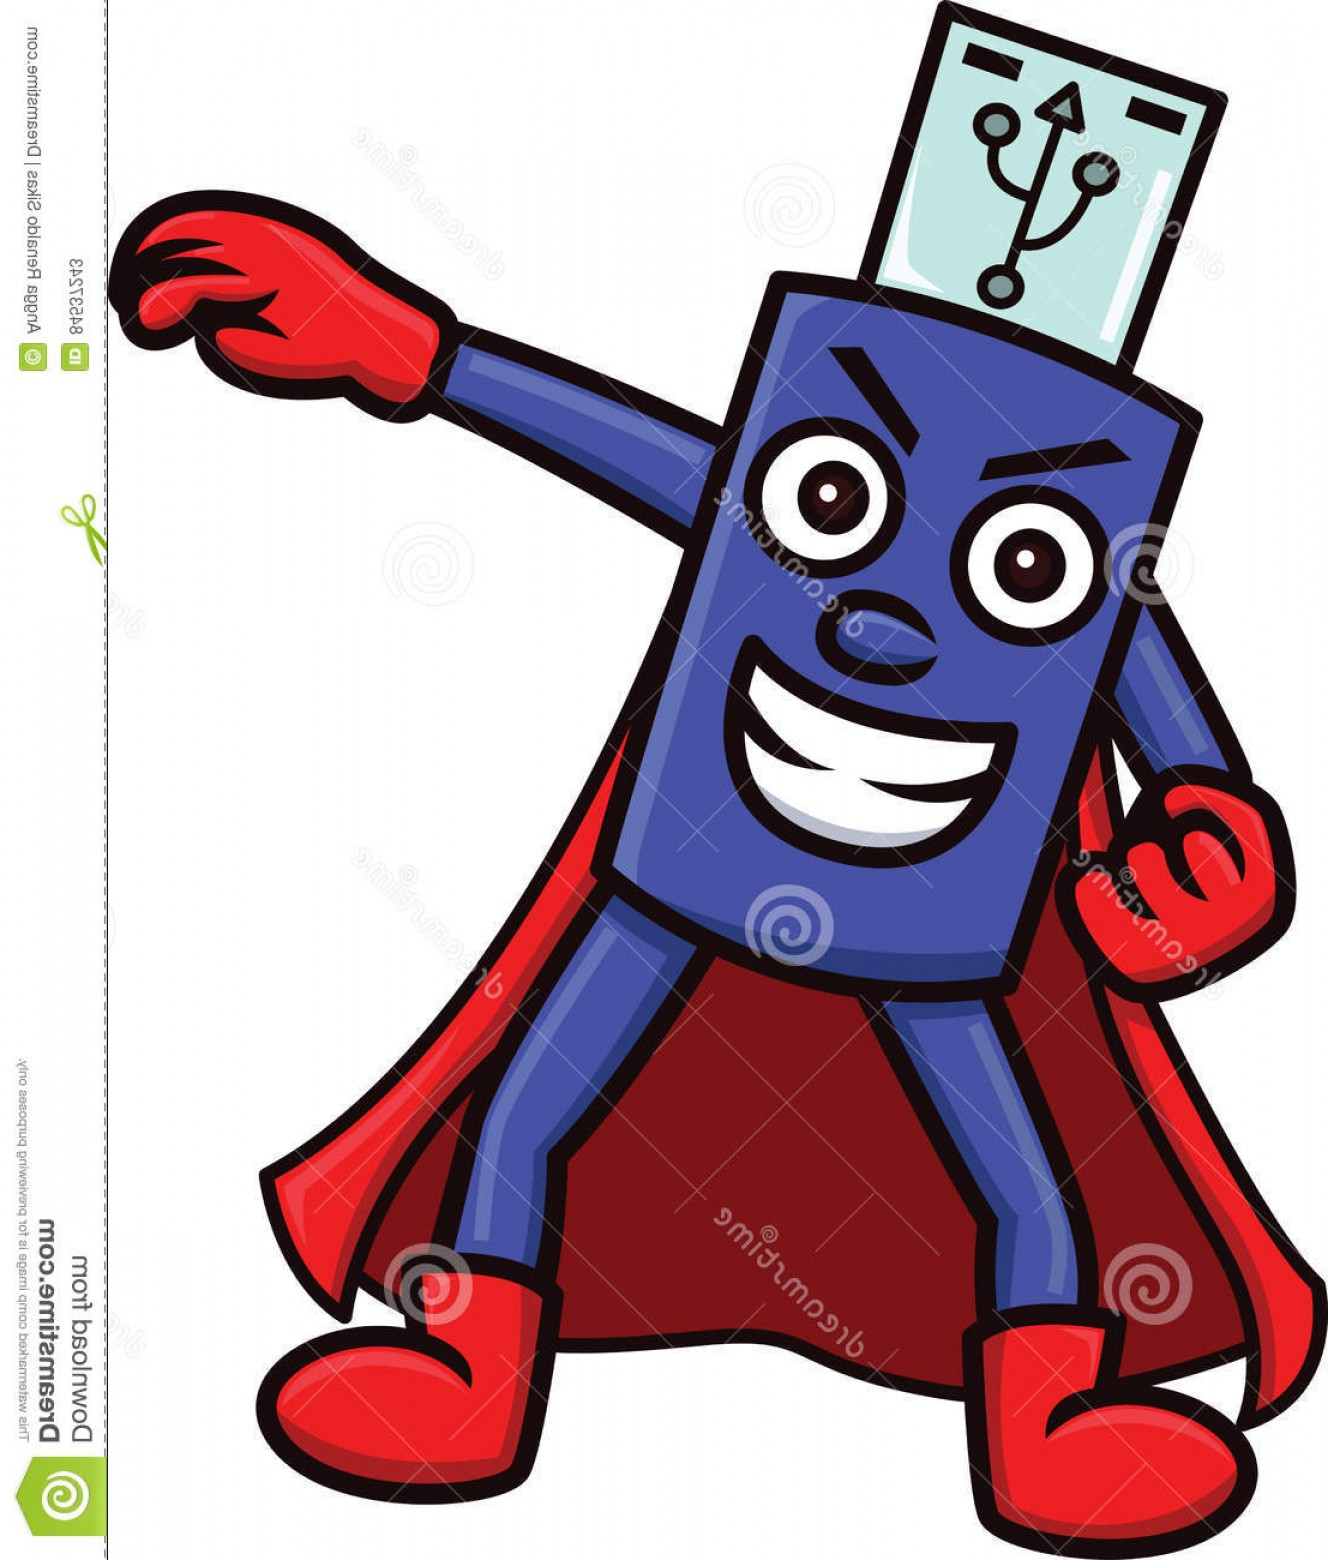 Flash Superhero Logo Vector: Stock Illustration Flash Drive Mascot Character Superhero Costume Cartoon Illustration Image